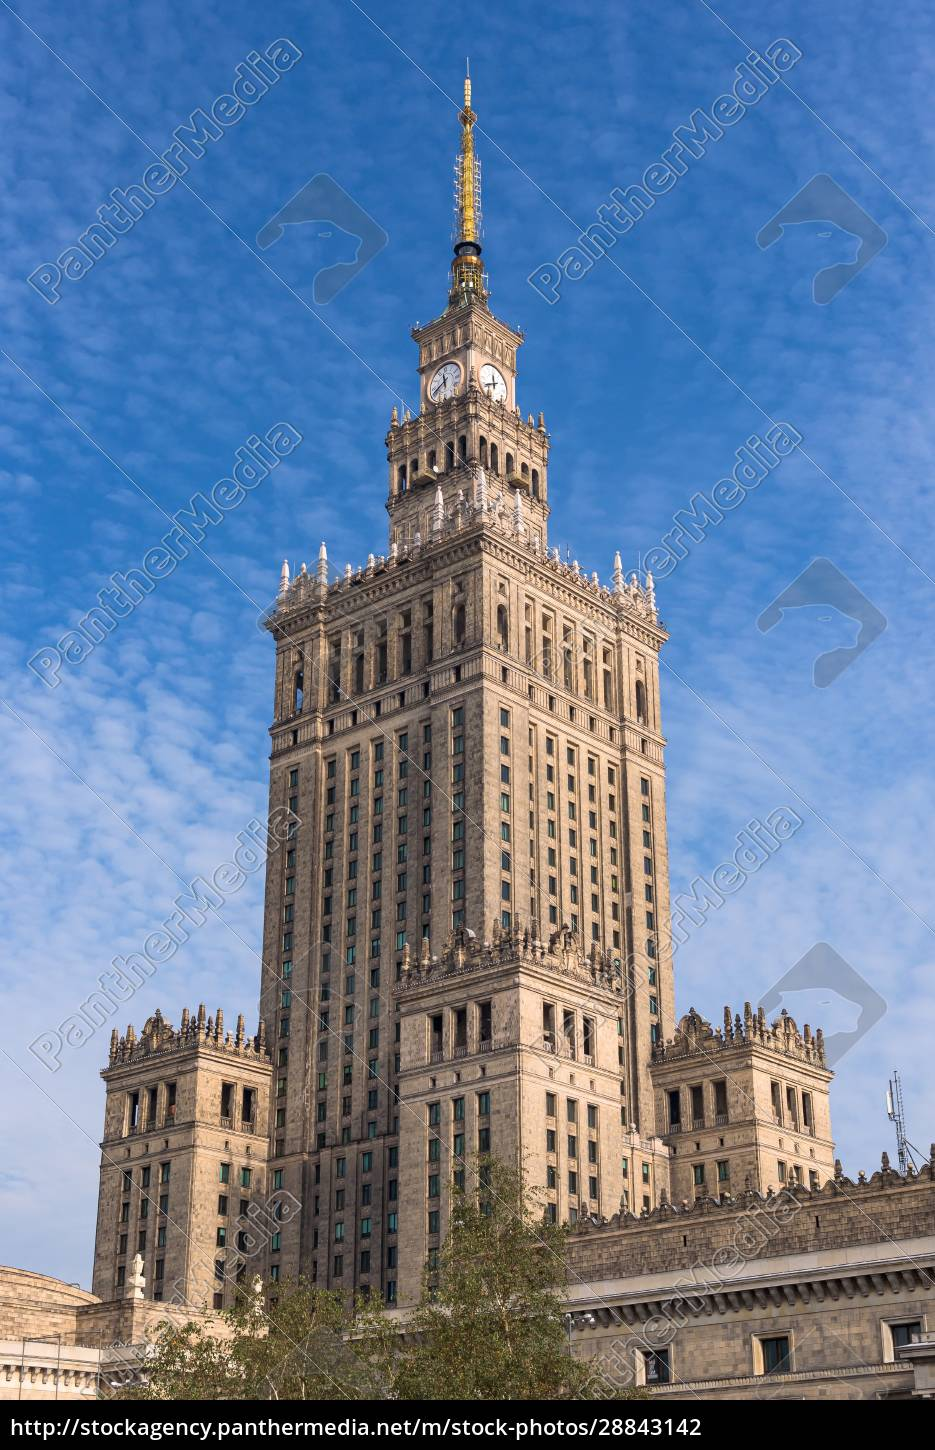 building, of, palace, of, culture, and - 28843142